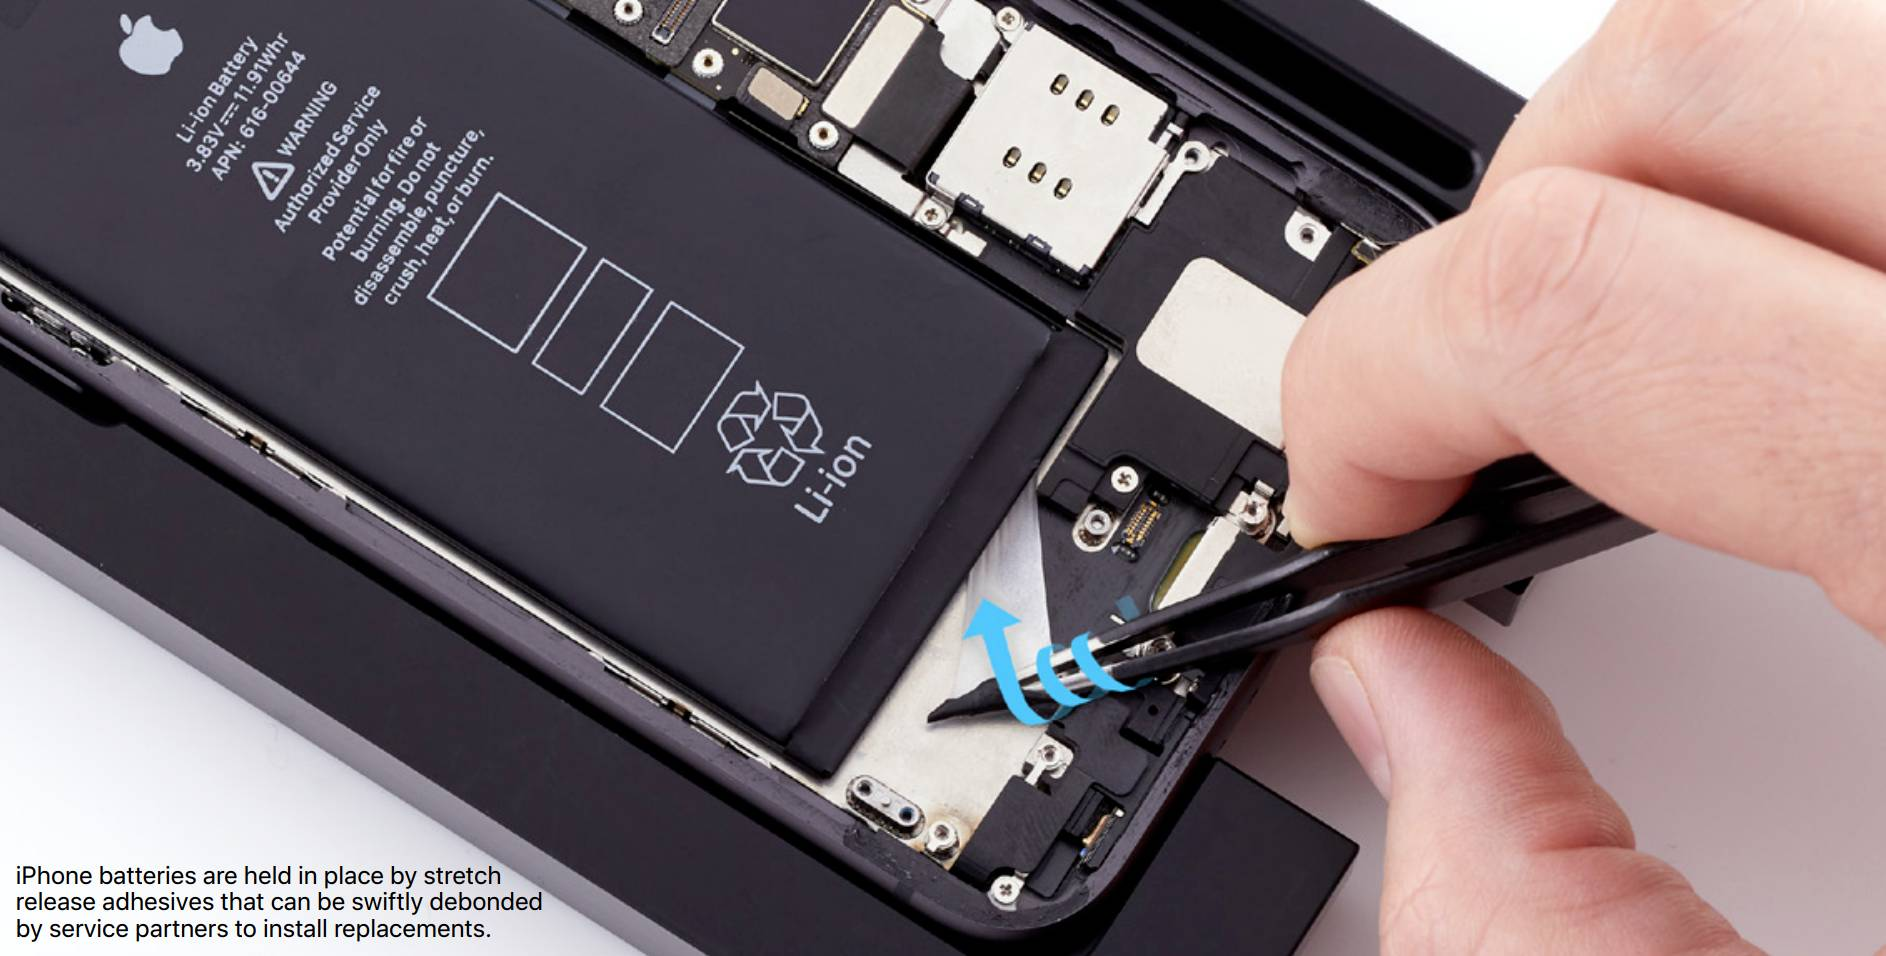 Screenshot from Apple's 2020 Environmental Progress Report, showing the removal of iPhone battery adhesive using tweezers.